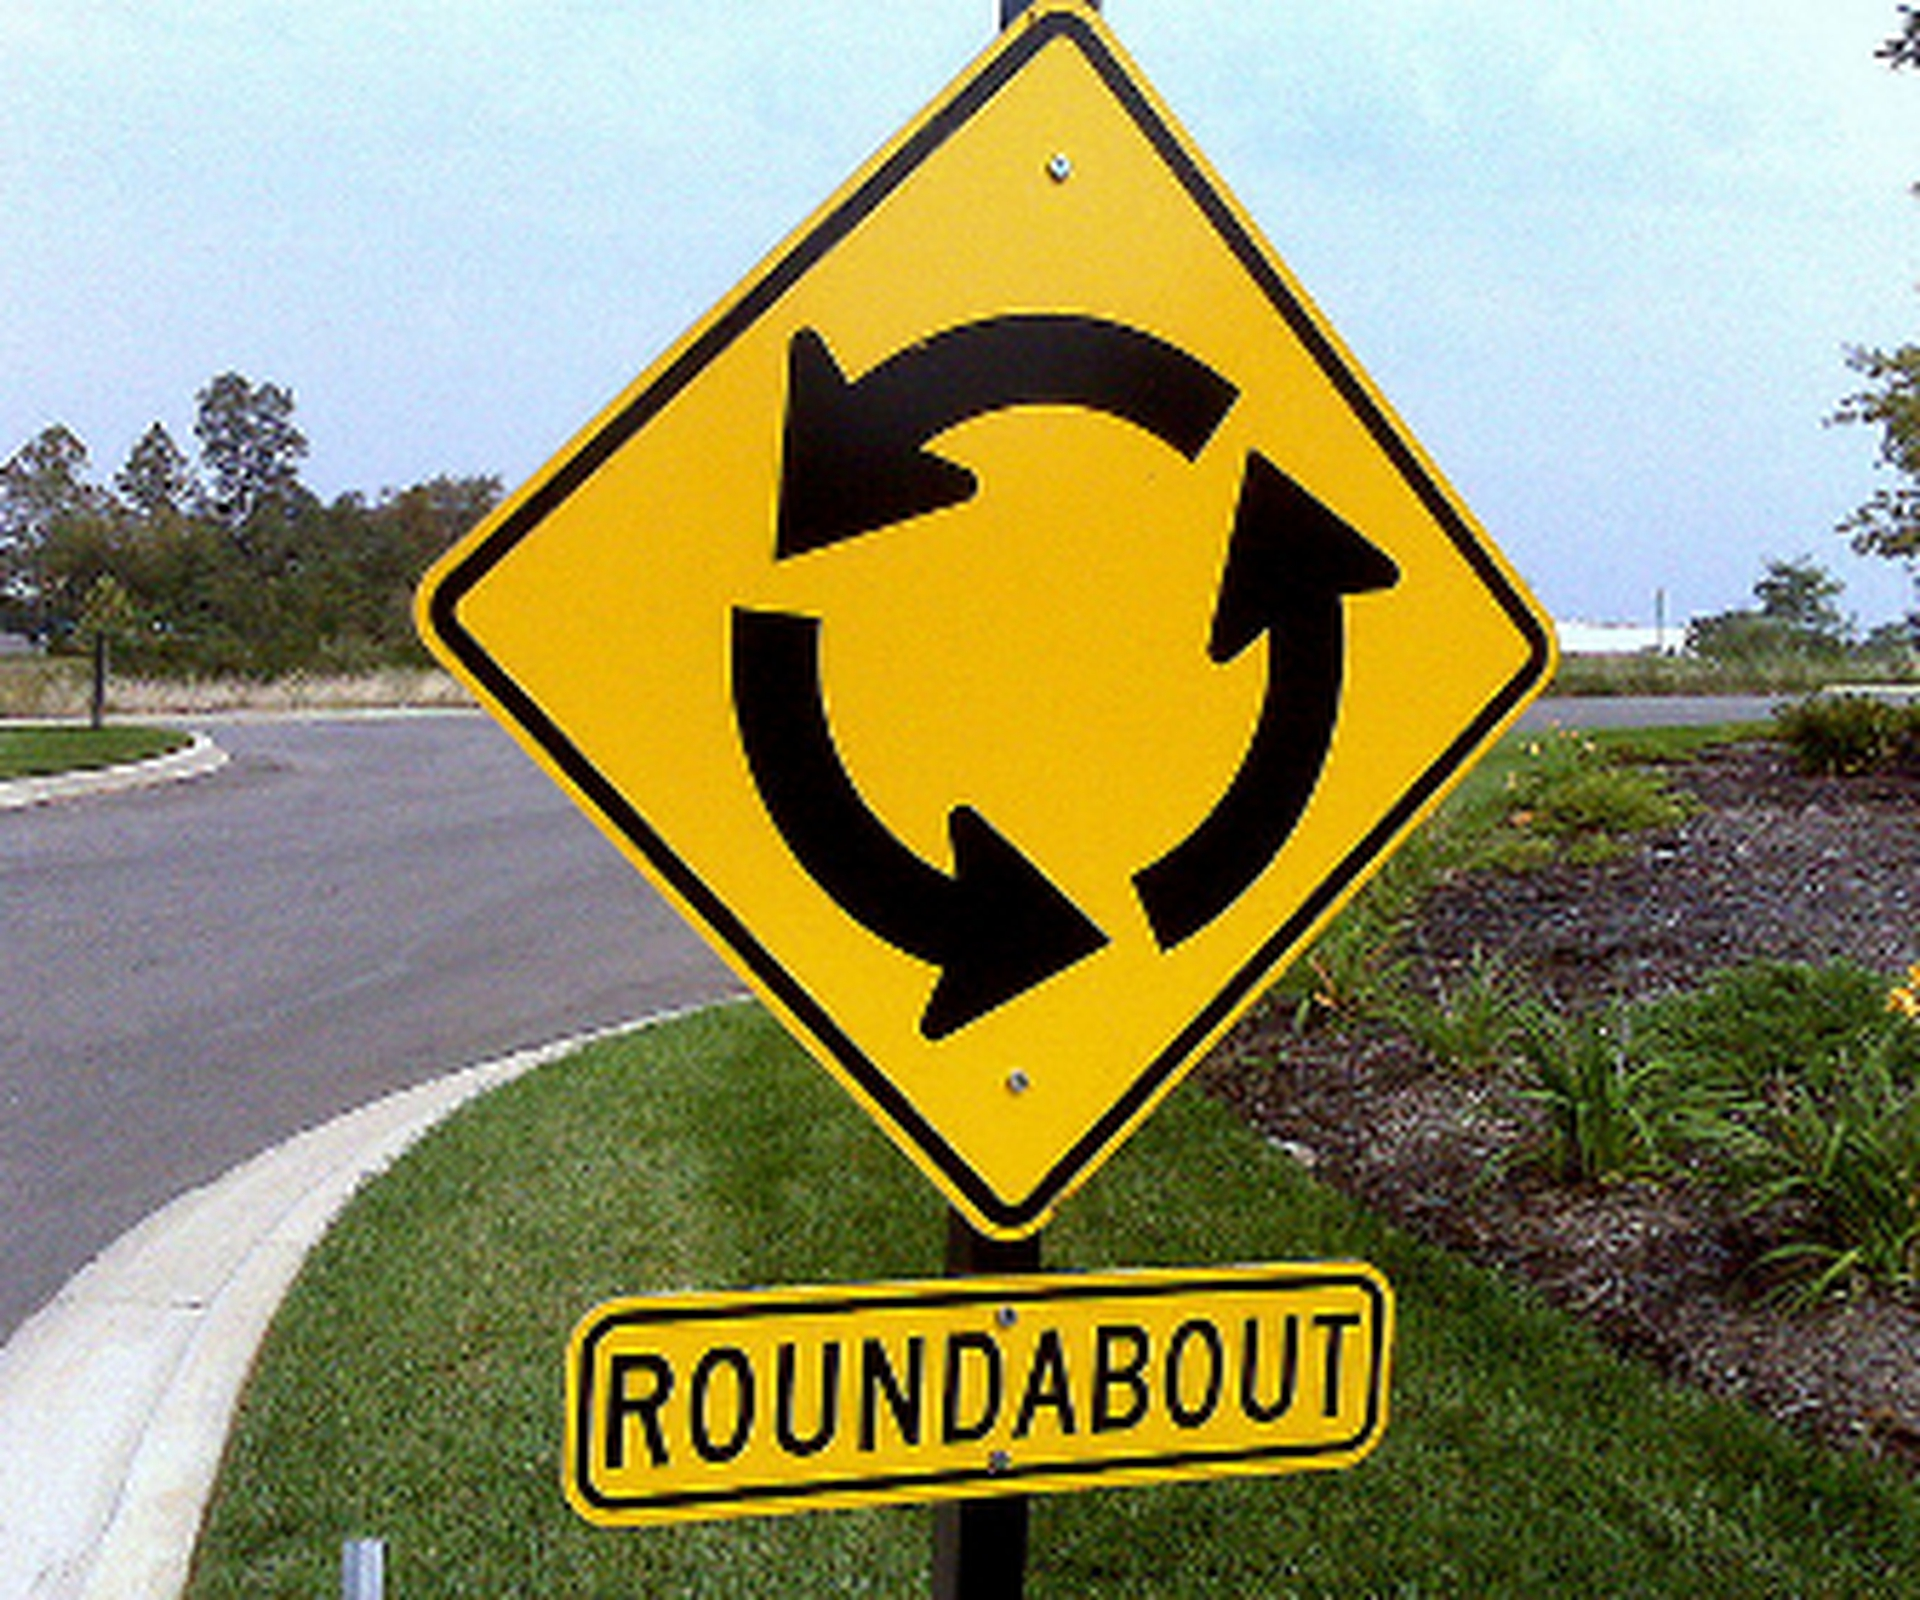 Roundabout Rules